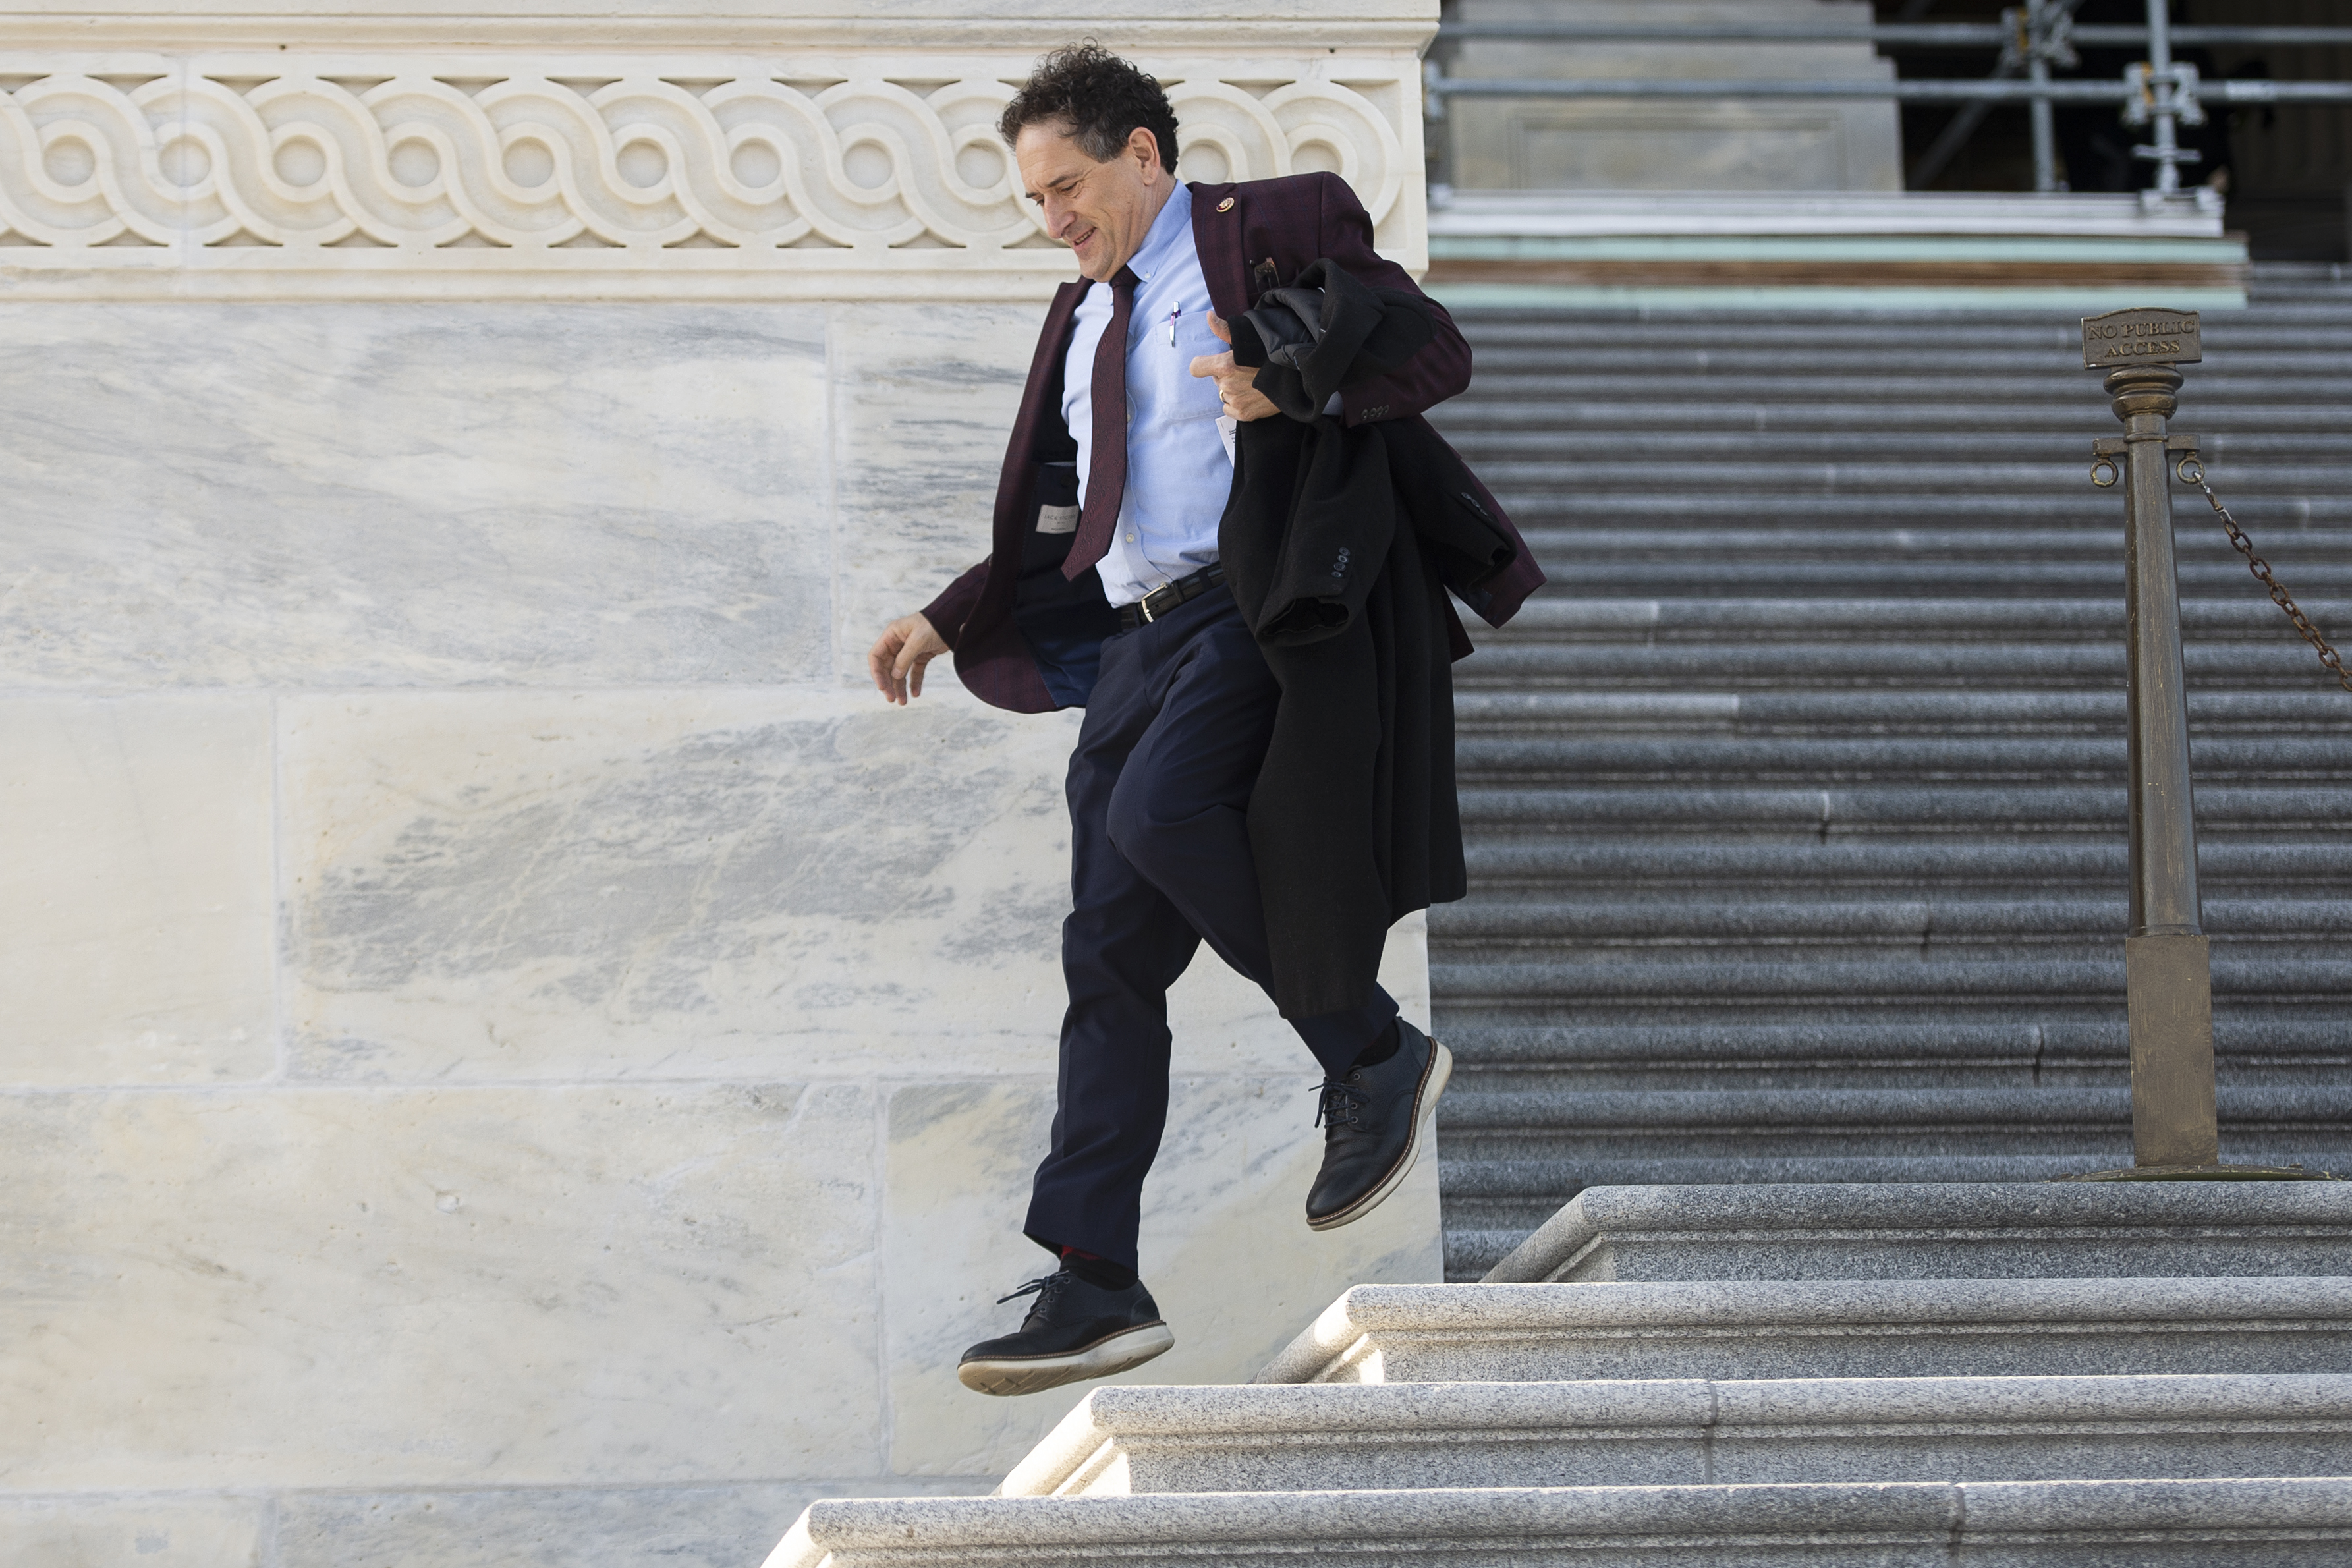 UNITED STATES - DECEMBER 12: Rep. Andy Levin, D-Mich., runs down the House steps after the final votes of the week on Thursday Dec. 12, 2019. (Photo by Caroline Brehman/CQ Roll Call)